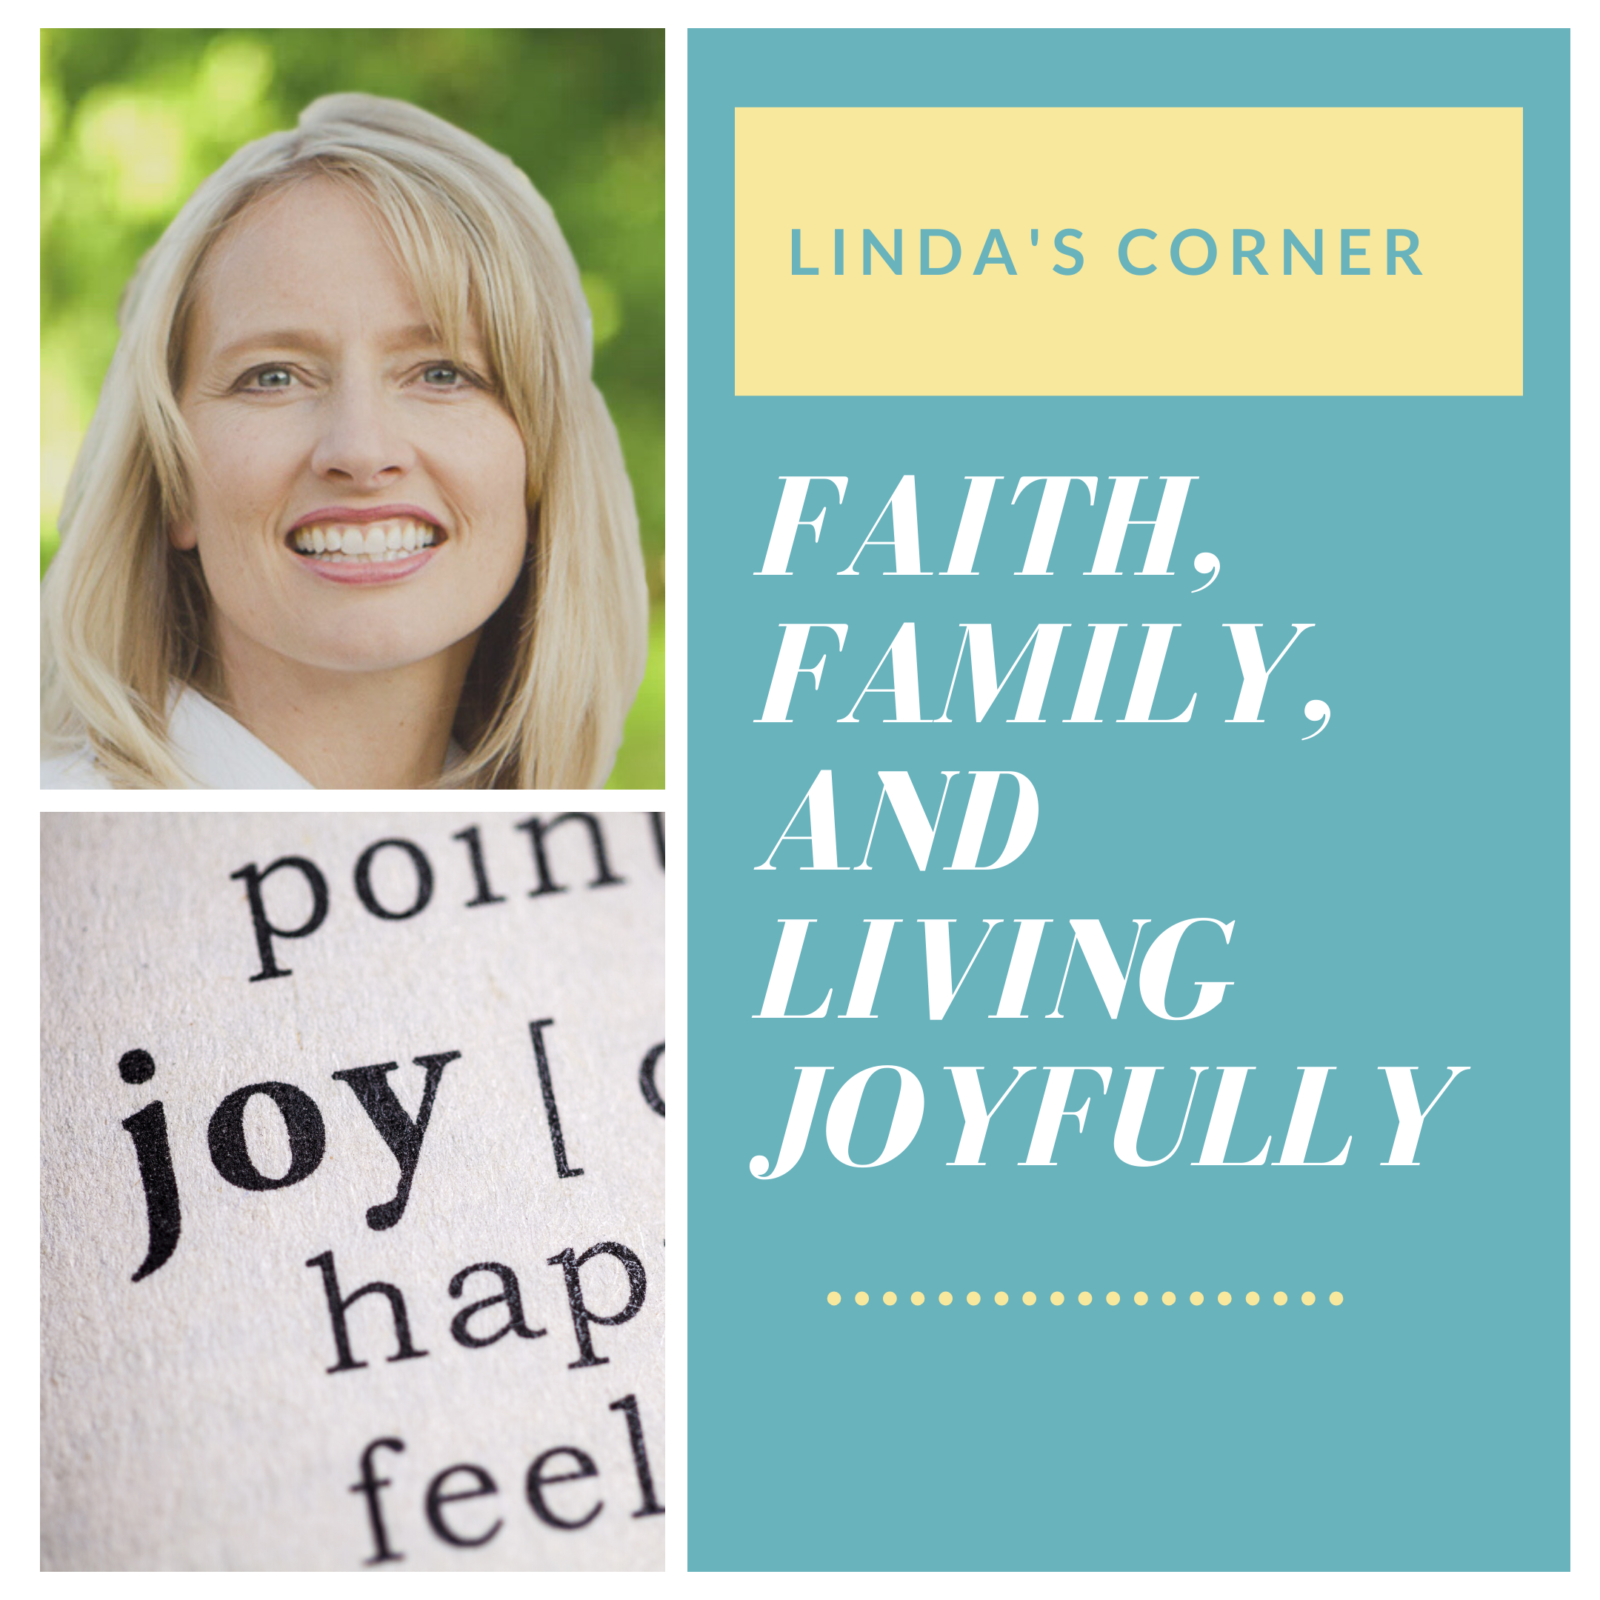 Linda's Corner podcast